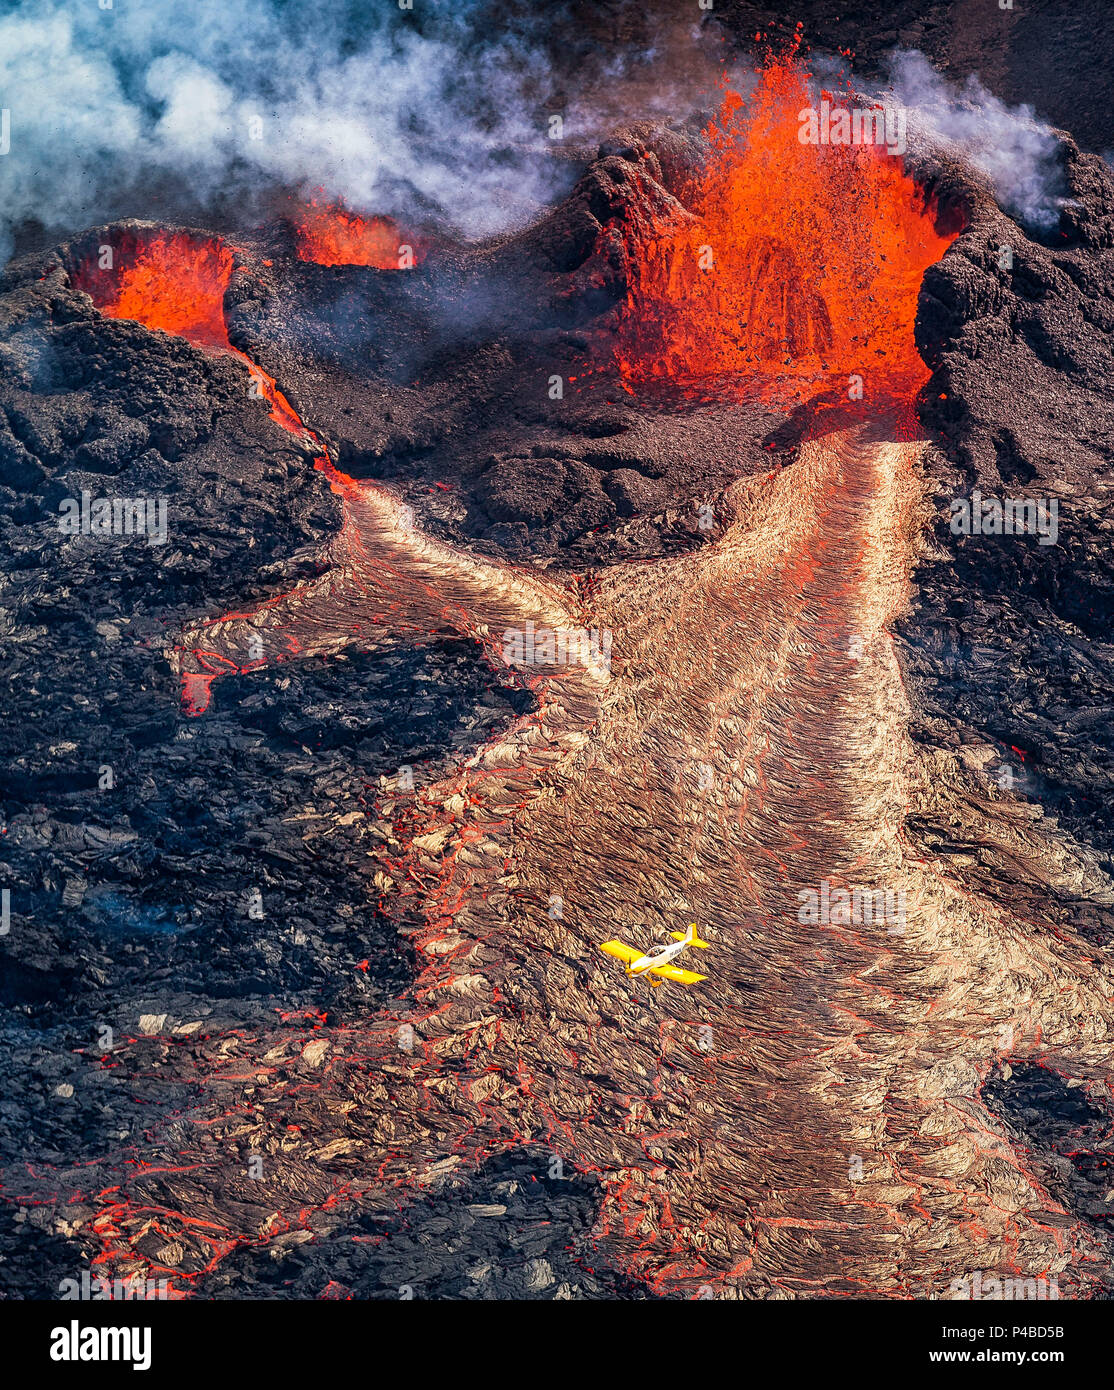 Plane flying over the eruption site at Holuhraun. August 29, 2014 a fissure eruption started in Holuhraun at the northern end of a magma intrusion, which had moved progressively north, from the Bardarbunga volcano. Bardarbunga is a stratovolcano located under Vatnajokull, Iceland's most extensive glacier, picture Date-Sept. 3, 2014 - Stock Image